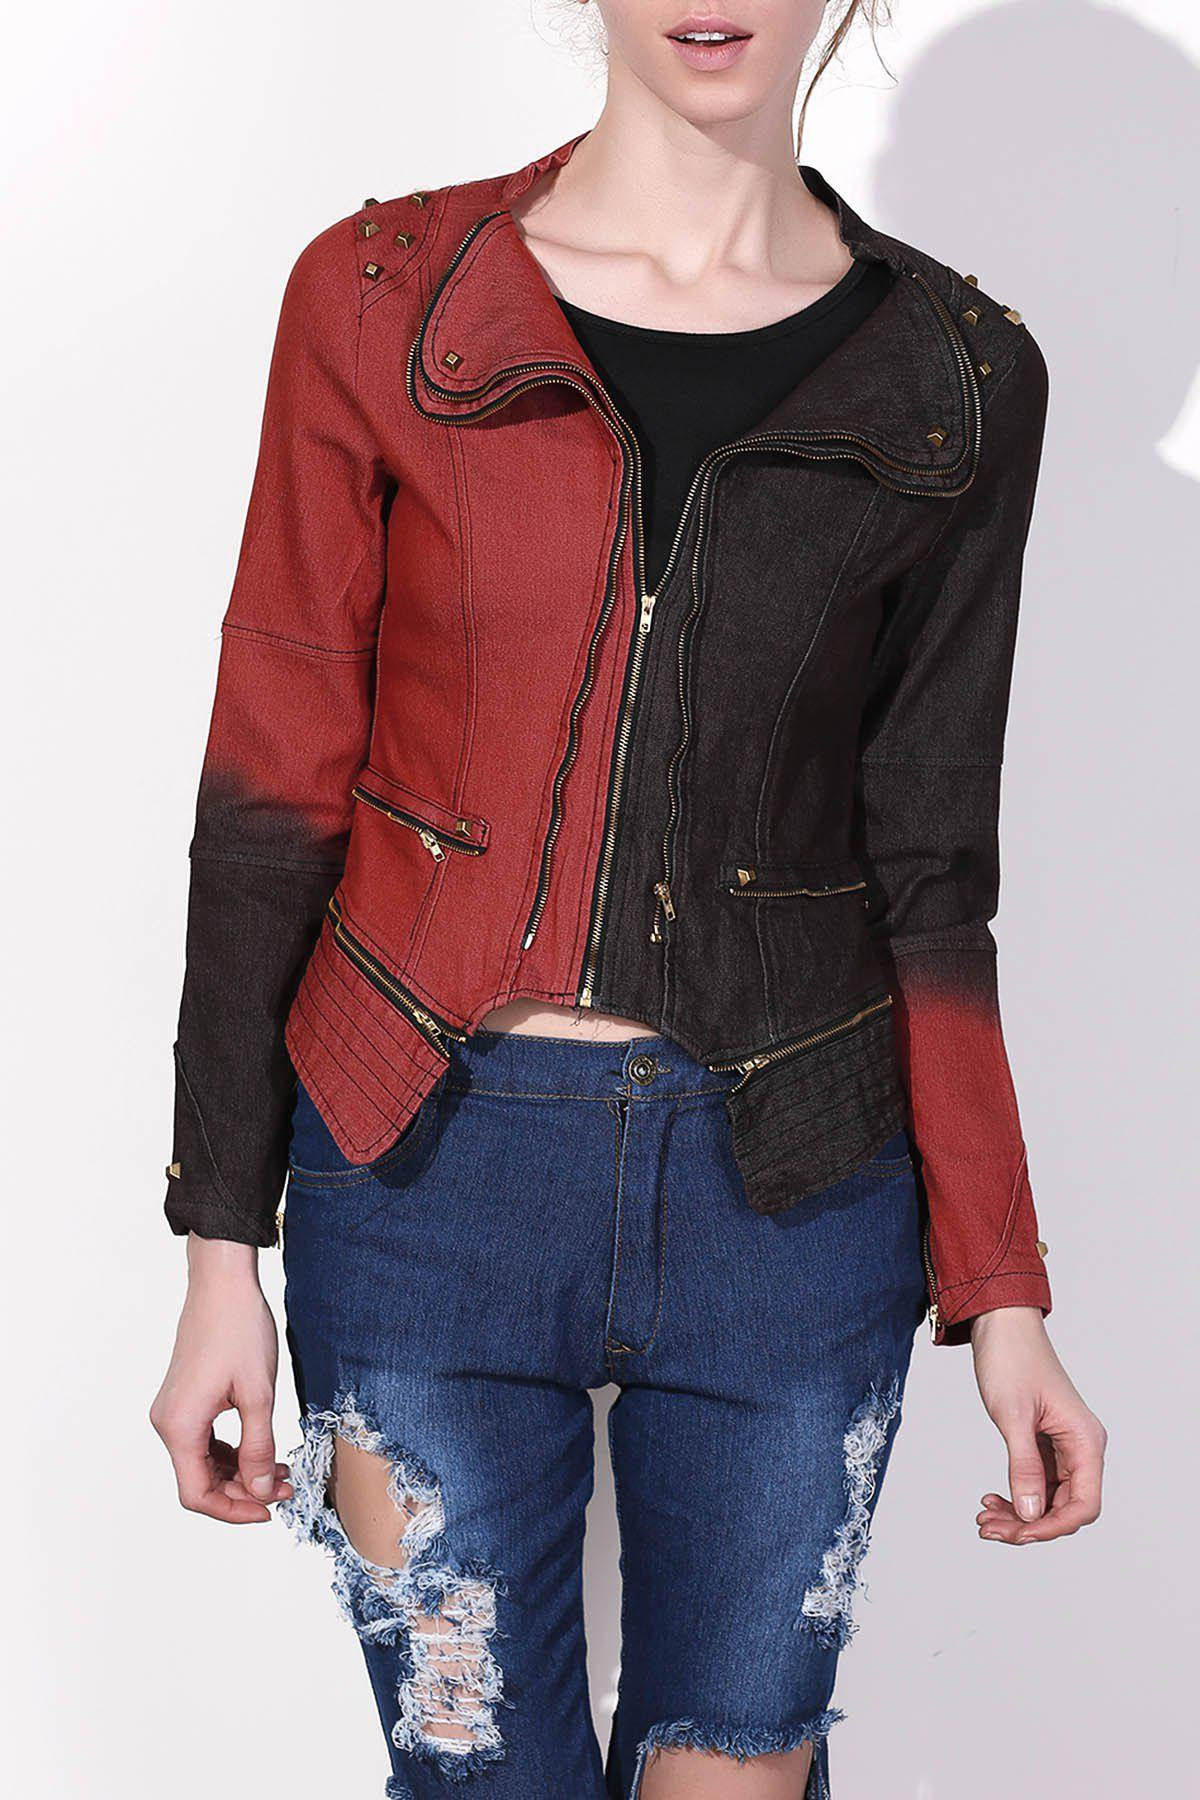 Punk Turn-Down Neck Long Sleeve Hit Color Studded Women's Jacket - RED/BLACK M